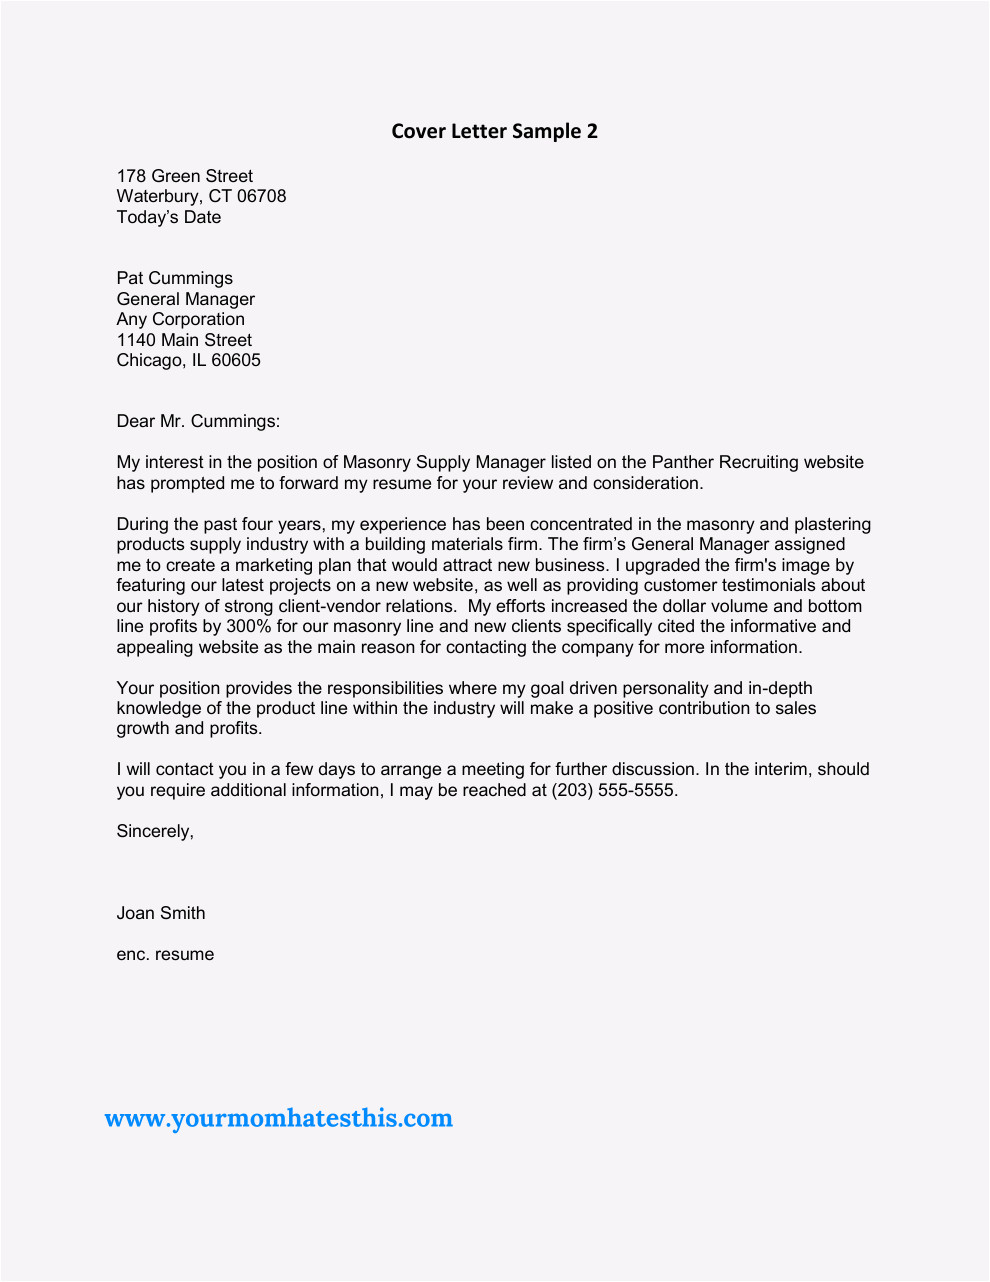 Sample Cover Letter for Resident assistant 36 Cover Letter for Resident Advisor Position Academic